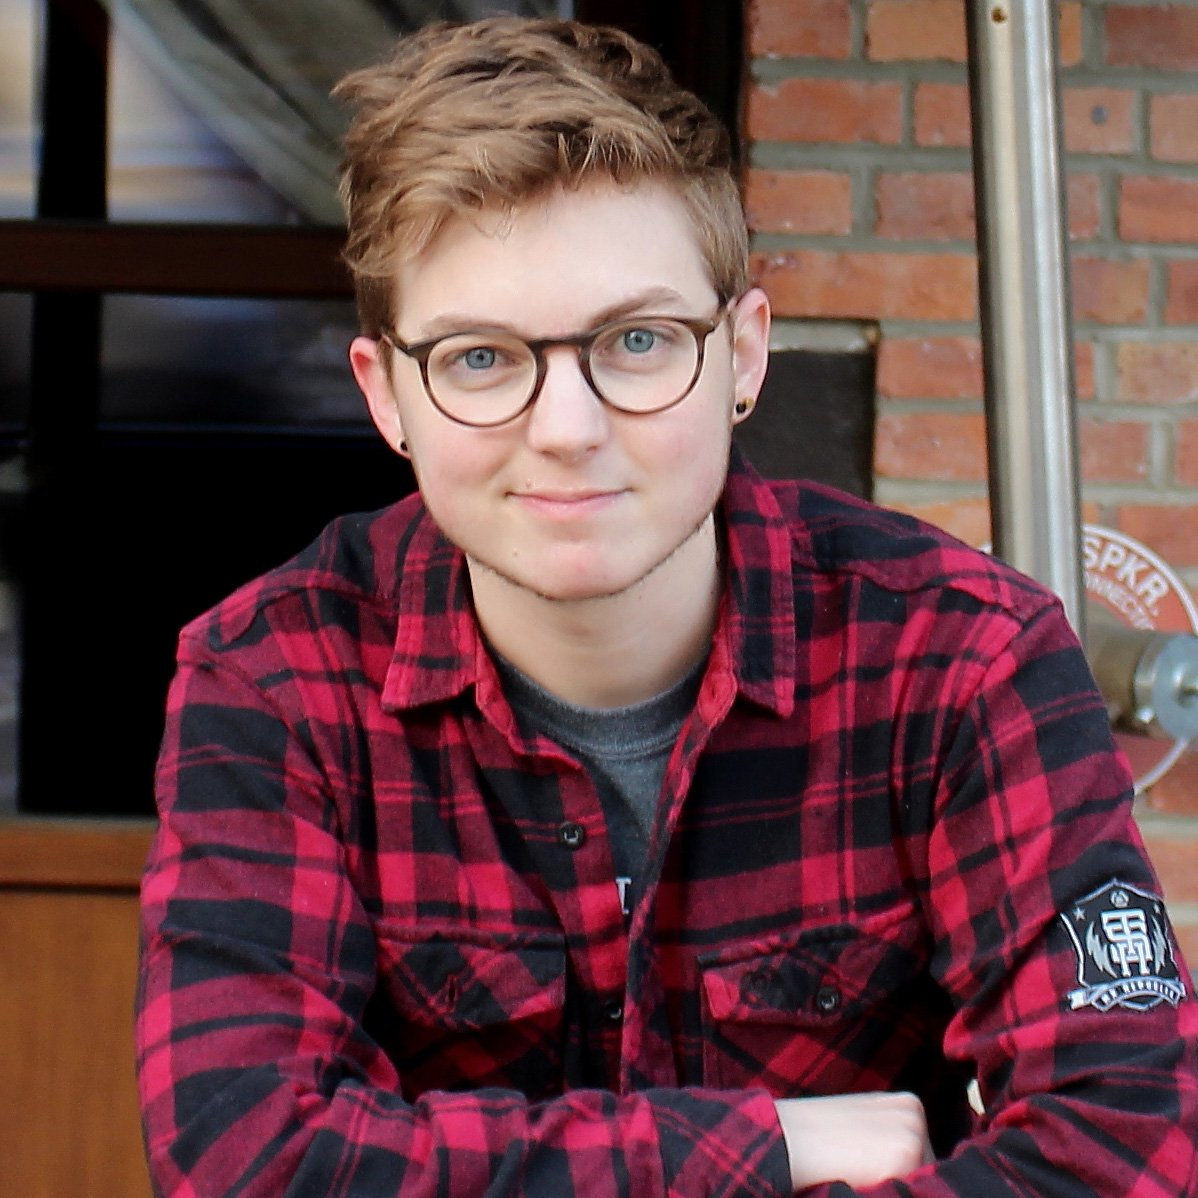 a picture of Jackson Bird. He is wearing a red flannel top and grey t-shirt underneath. He has short brown hair and wears glasses